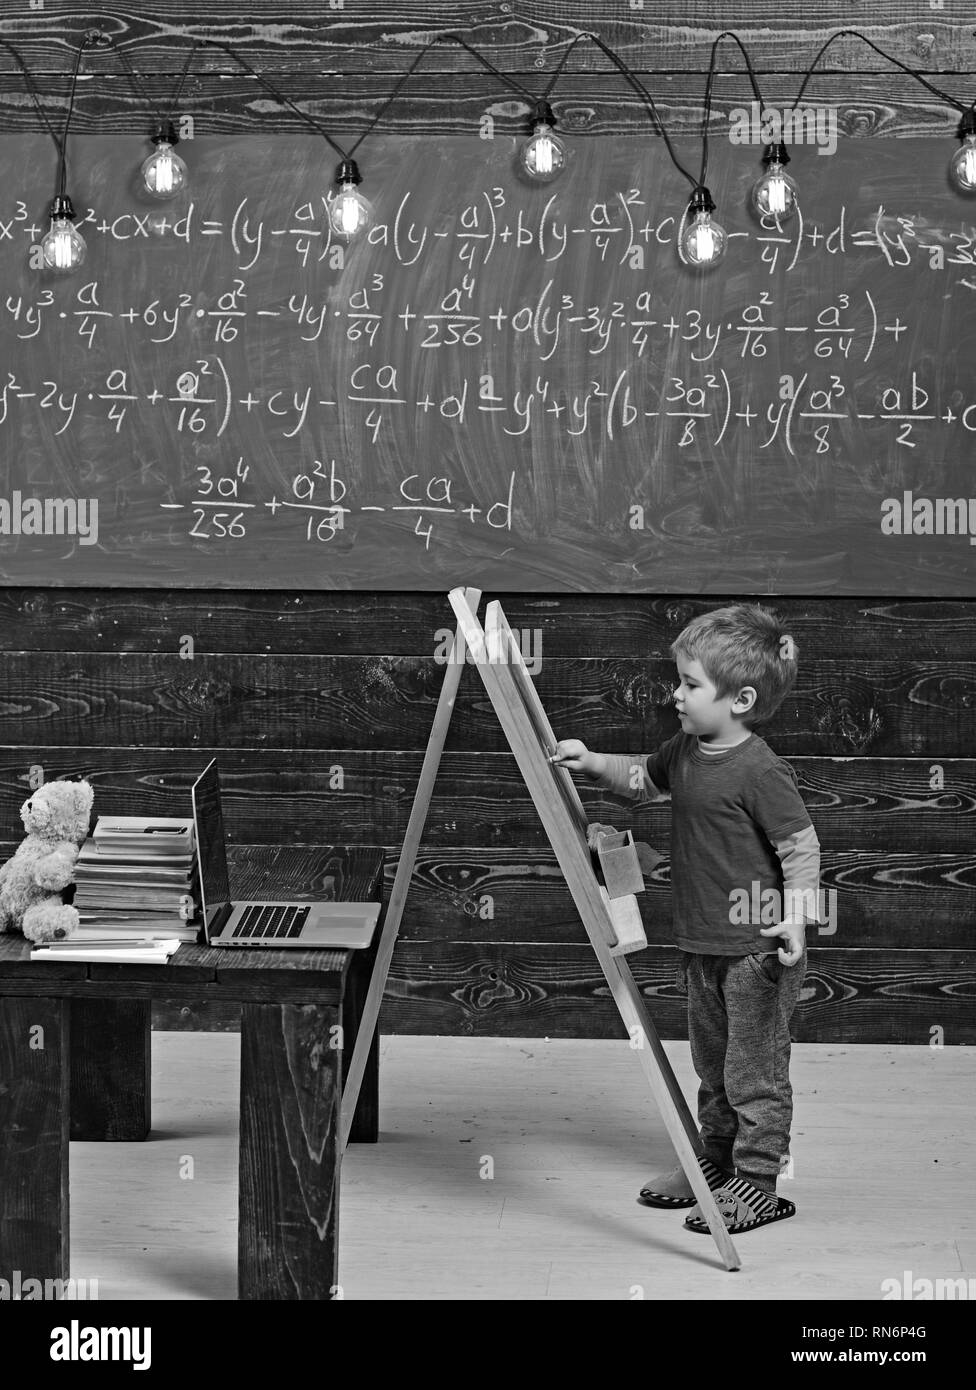 Little boy writing on chalkboard. Side view kid in front of green board with math equation. Smart little fellow studying math - Stock Image